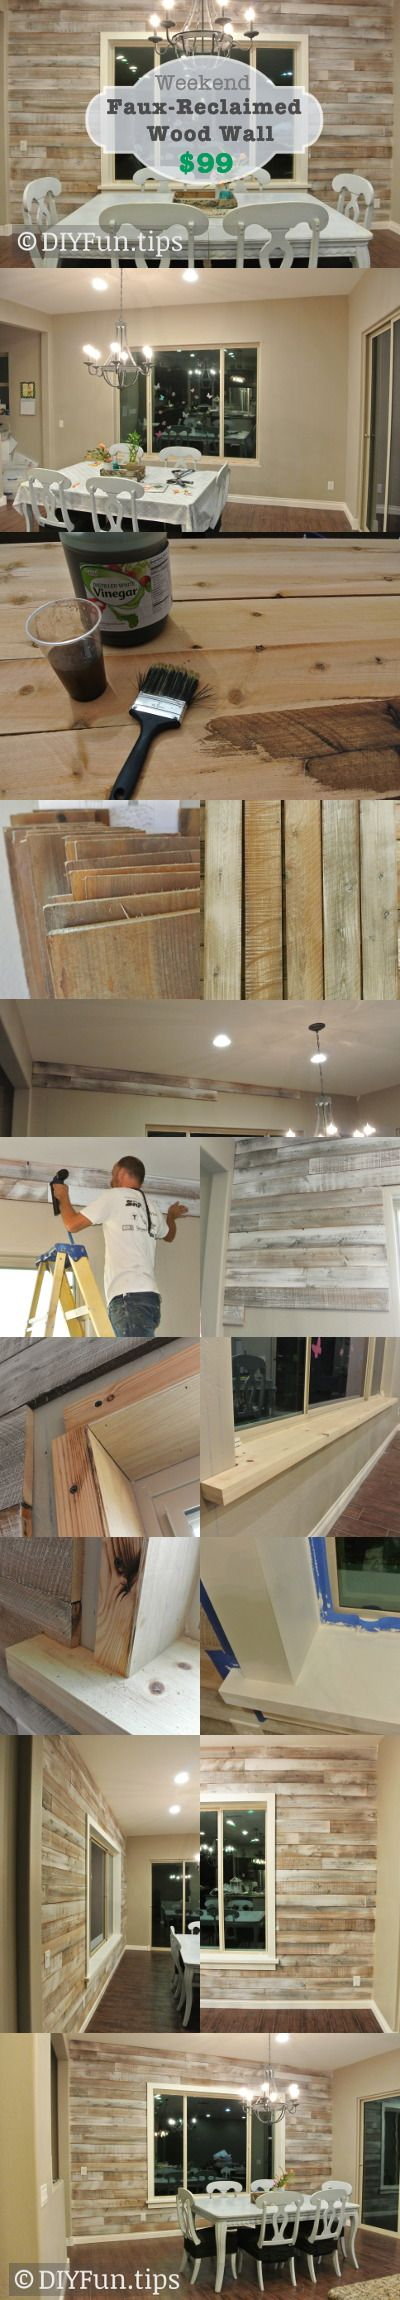 depot wallpaper in barns wood ludrw d ffdkzhd paneling rustic x barn wall lsznrv design barnwood home faux